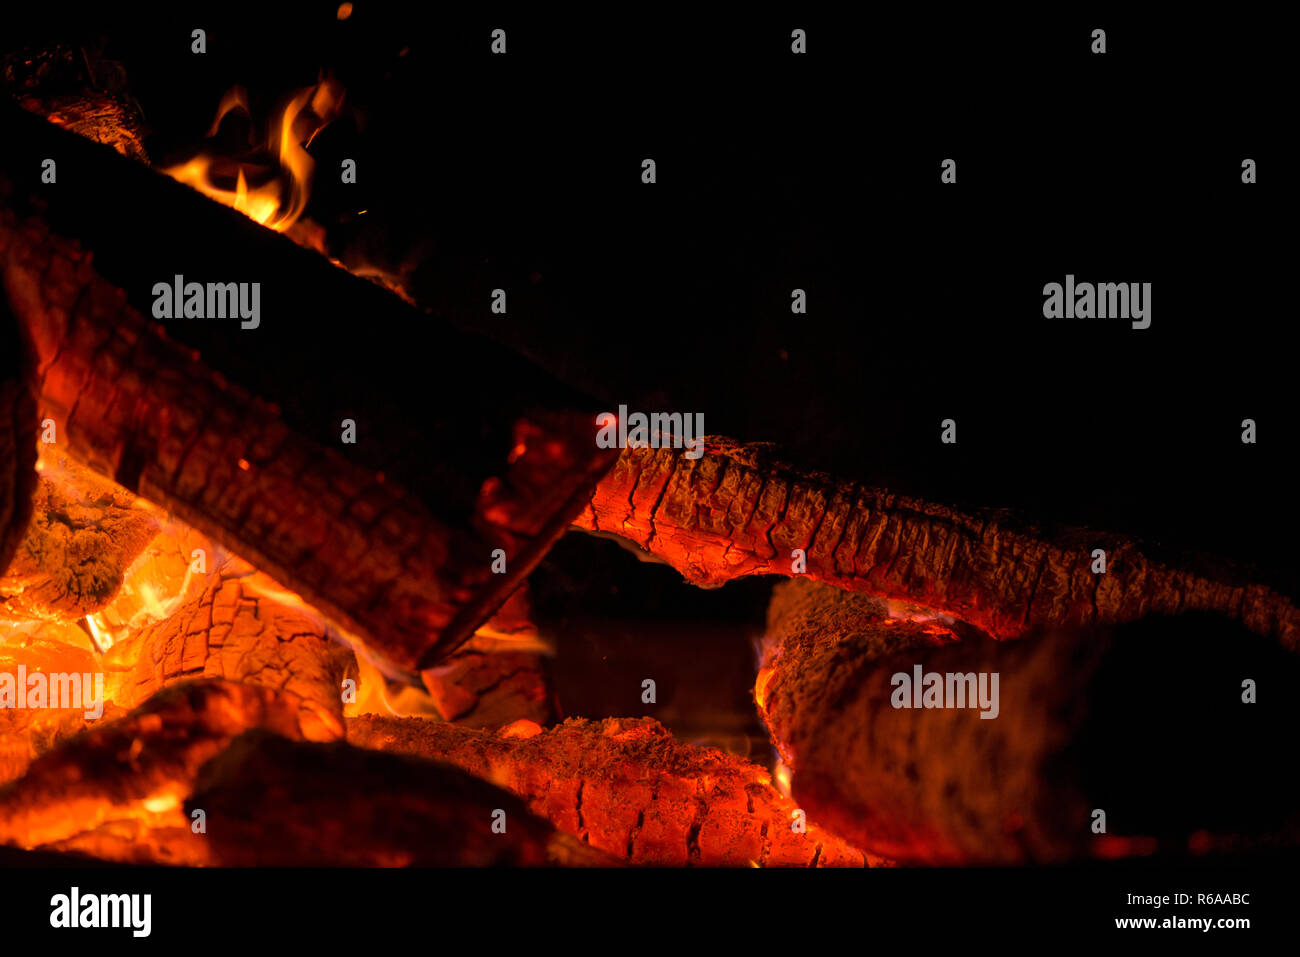 Ignite the fire. Warming up the cold winter nights. A macro shot of firewood, white dust and hot, glowing coal. Burning branches and wood. Flames in t - Stock Image